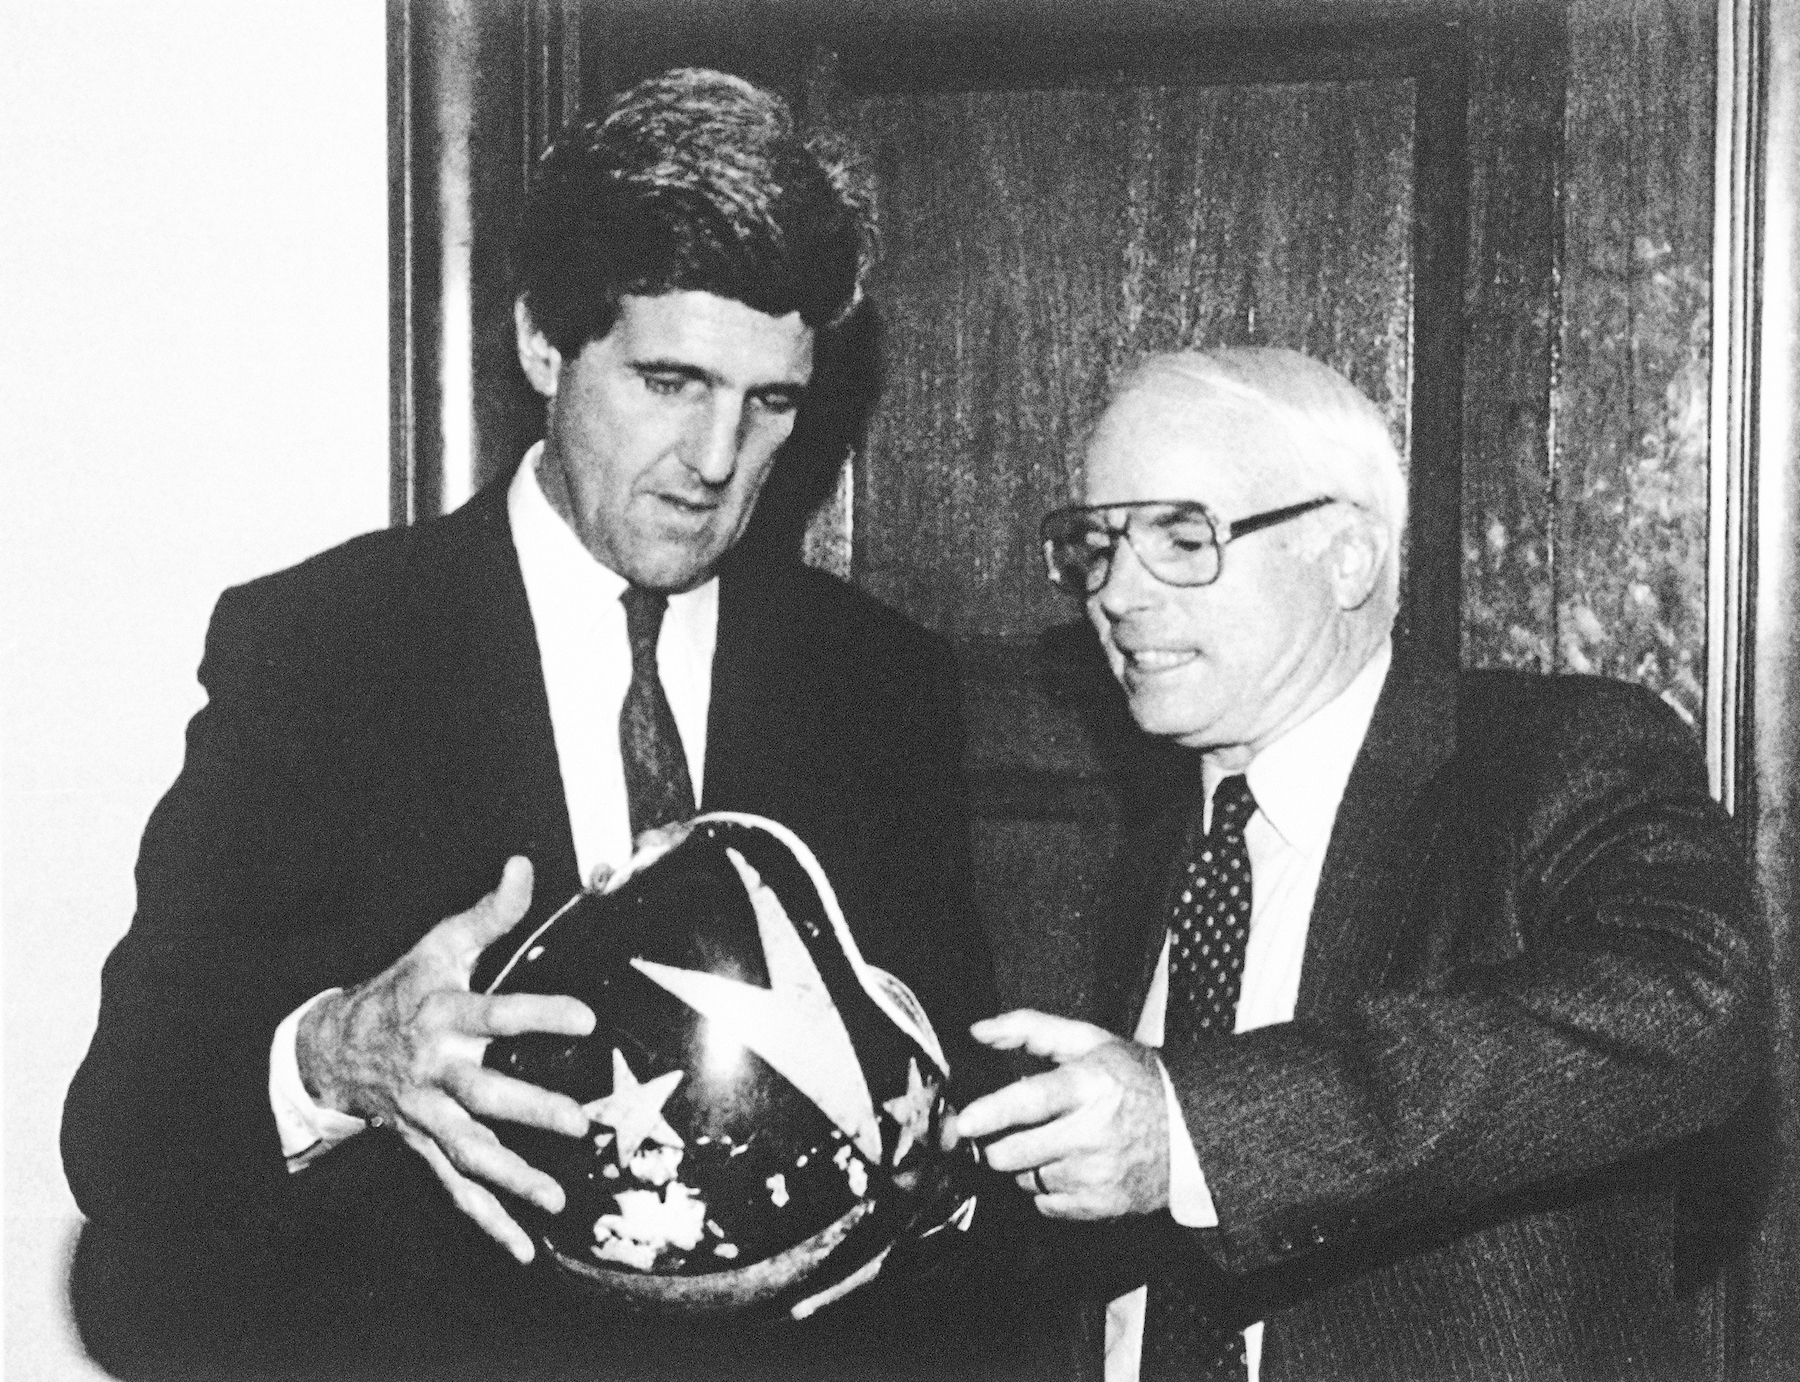 <div class='meta'><div class='origin-logo' data-origin='AP'></div><span class='caption-text' data-credit='AP Photo/U.S. Senate'>Sen. John Kerry gives Sen. John McCain his pilot's helmet on Capitol Hill in Washington, Dec. 2, 1992.</span></div>